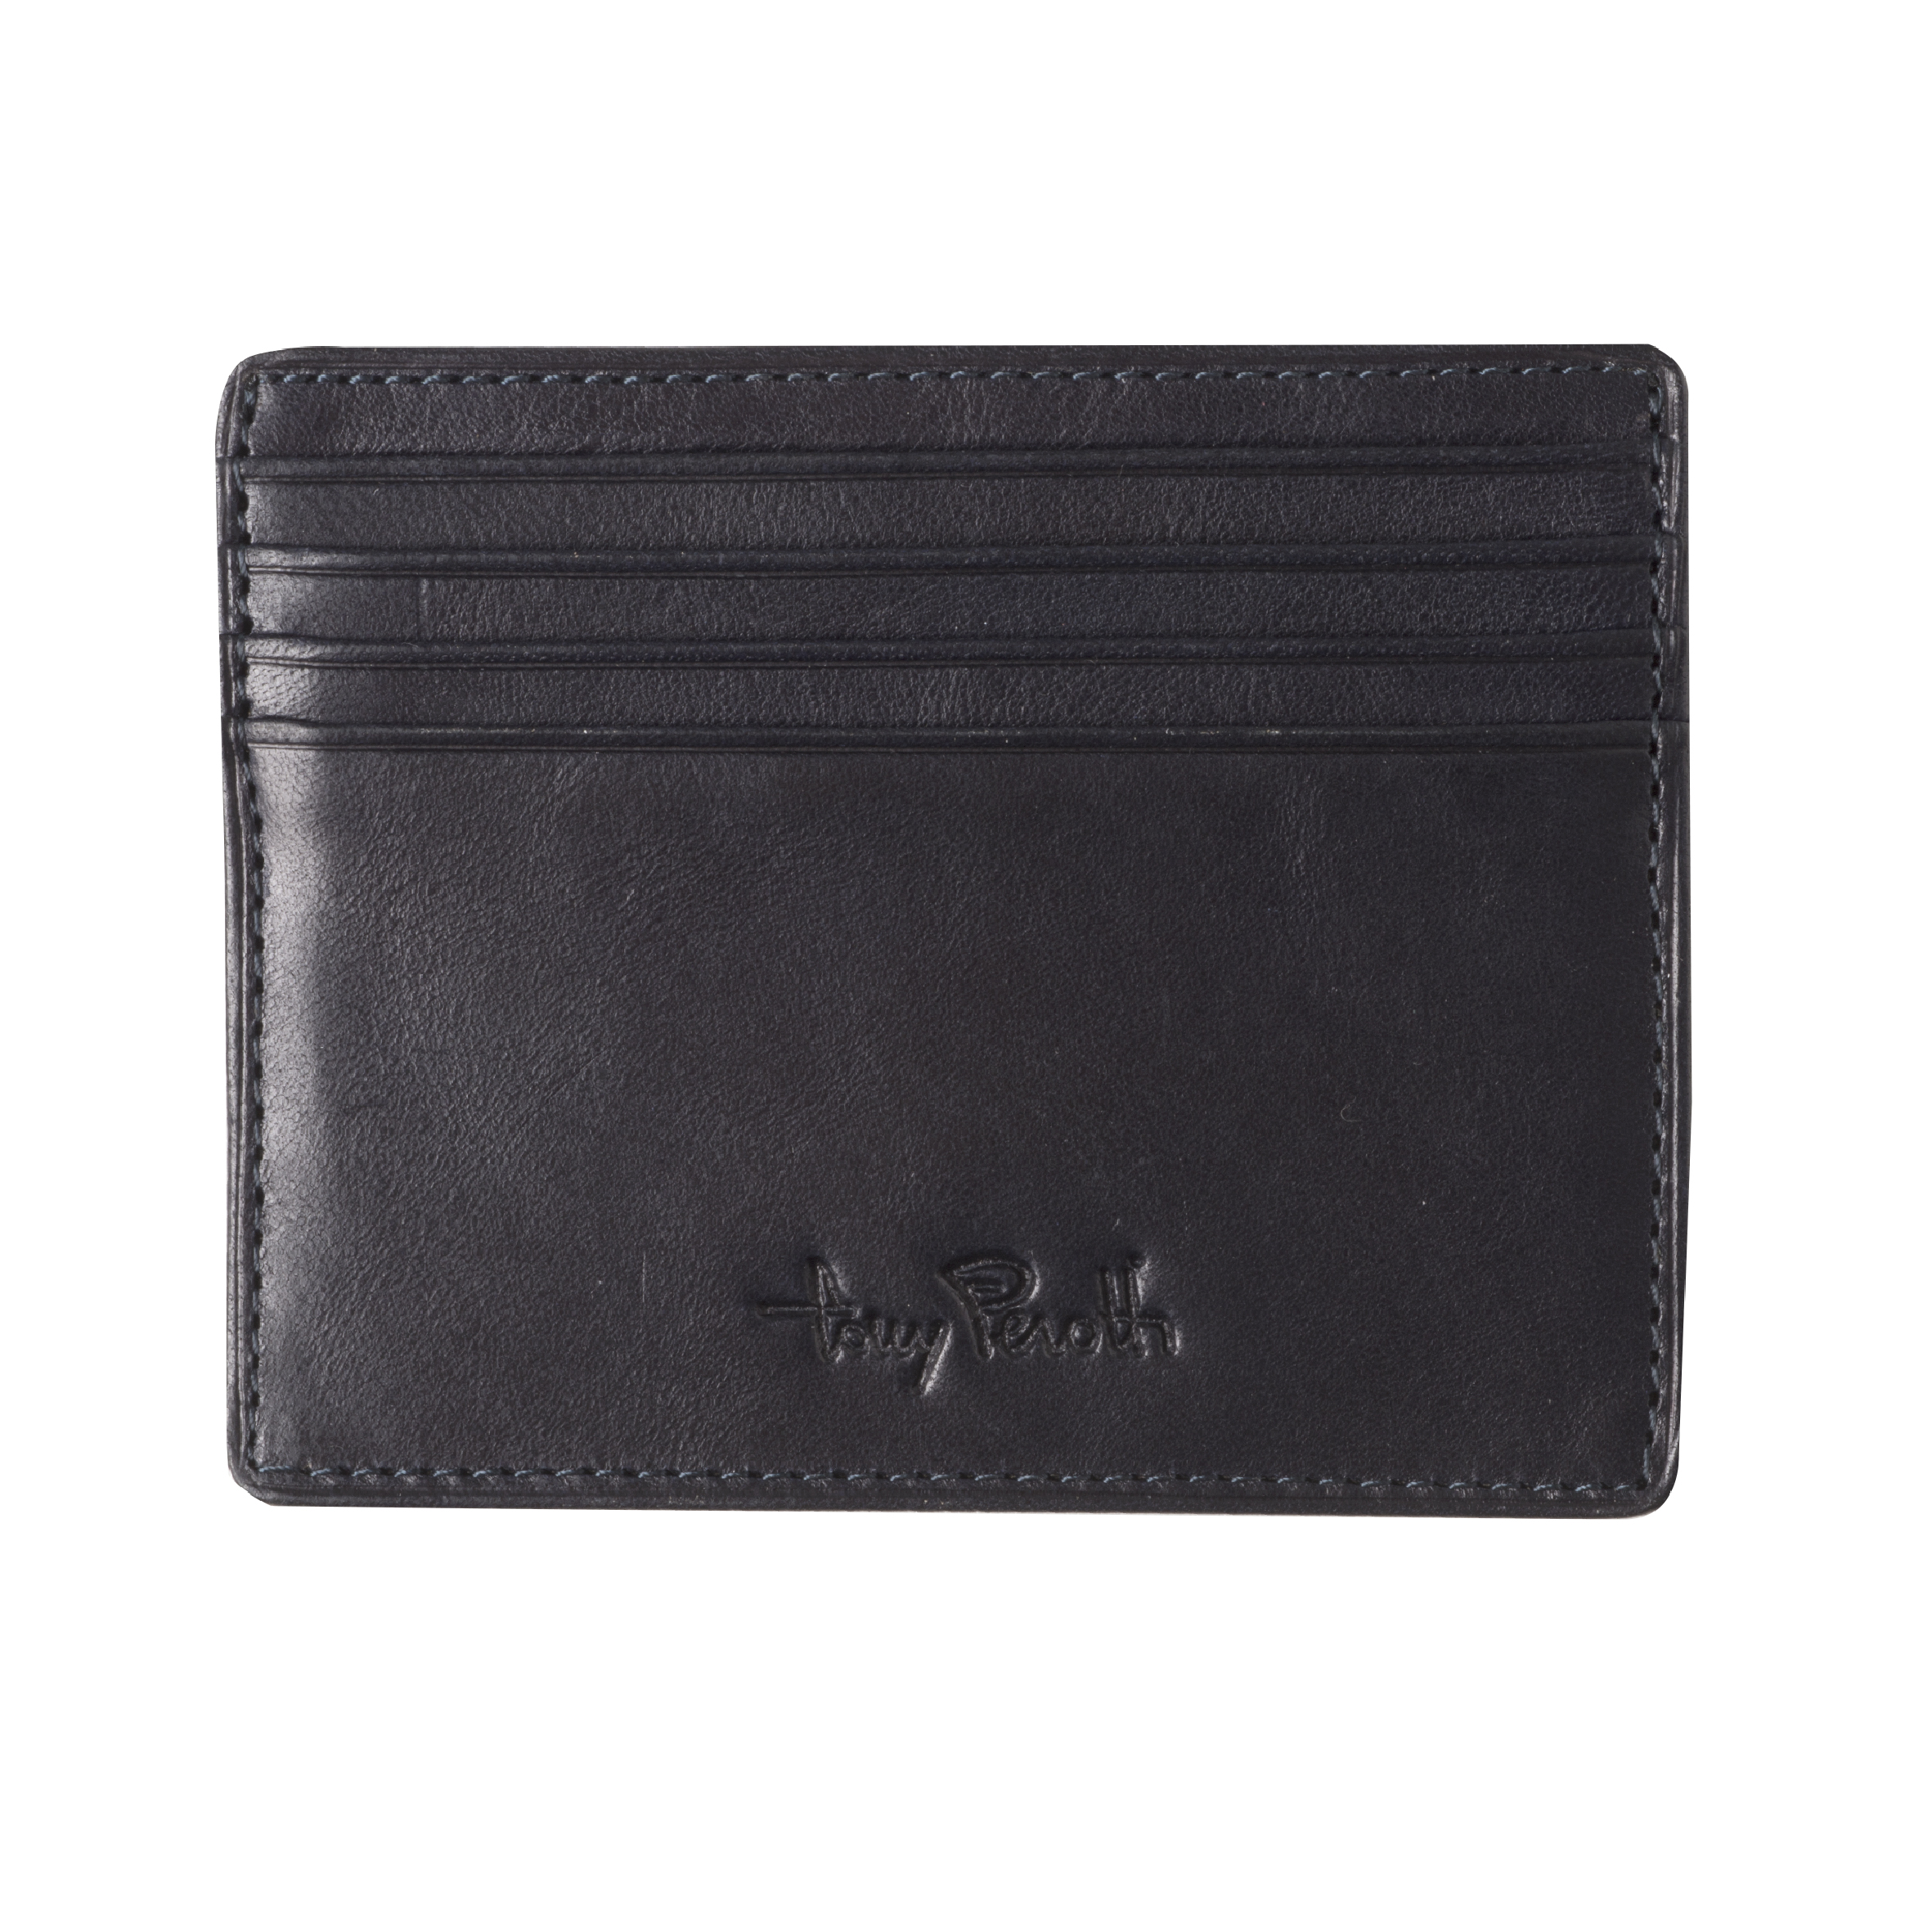 Tony Perotti Creditcard wallet With Small Pocket for notes Black